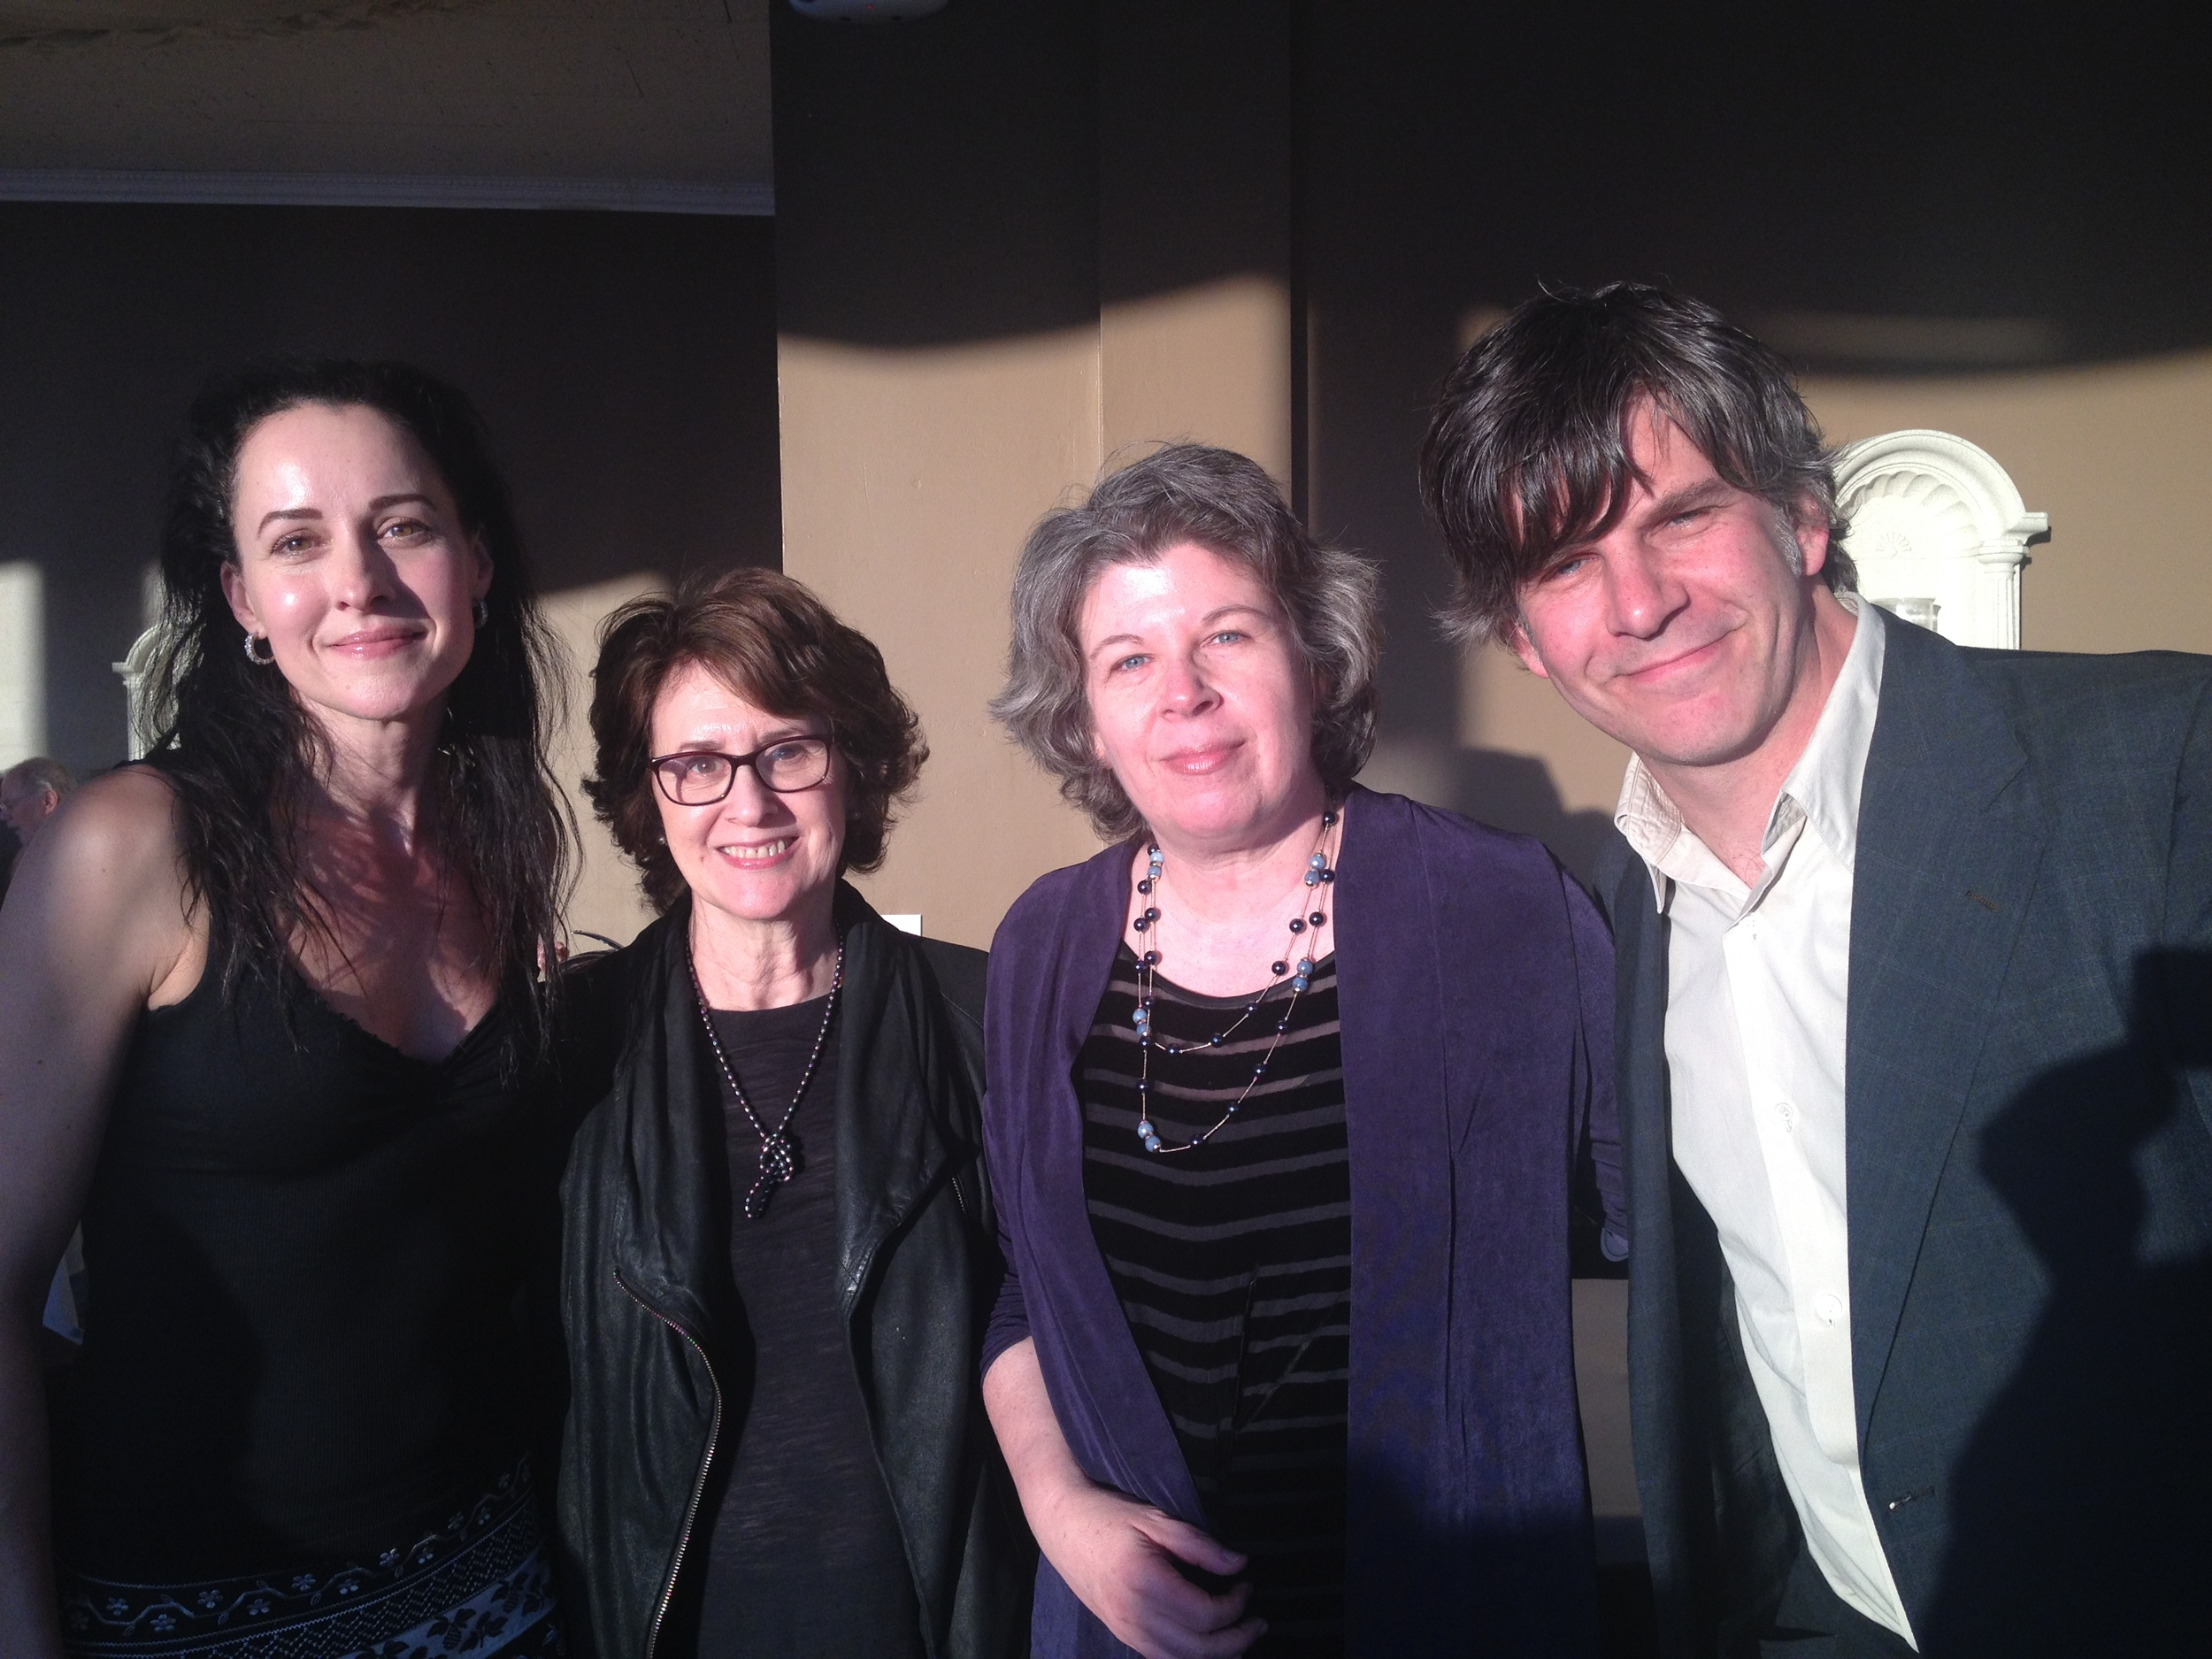 On May 6th,Jason had the privilege of reading   with  Delia Ephron  and  Meg Wolitzer as part of  Spoken Interludes , a literary salon   lovingly curated by  DeLauné Michel   in Westchester County, NY. The food was great and the questions from the audience were even better, and all of it included a beautiful view overlooking the Hudson. Jason is definitely starting to get spoiled by events like this.